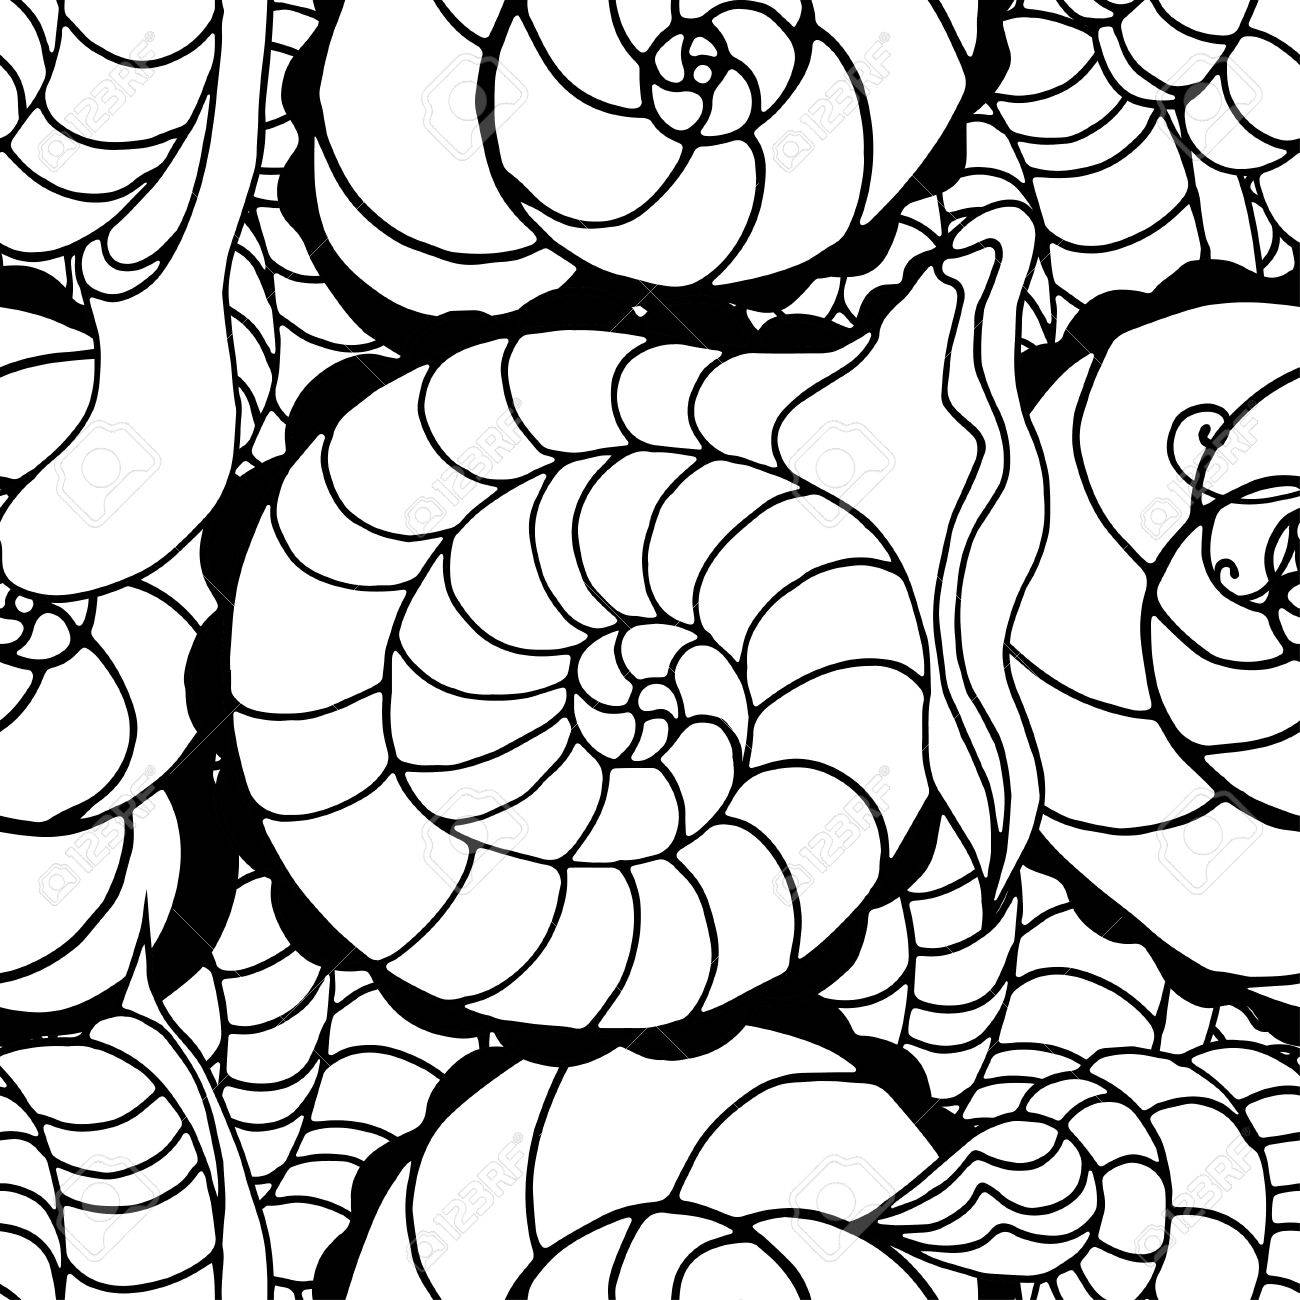 doodle seamless pattern of snail can be used for coloring book